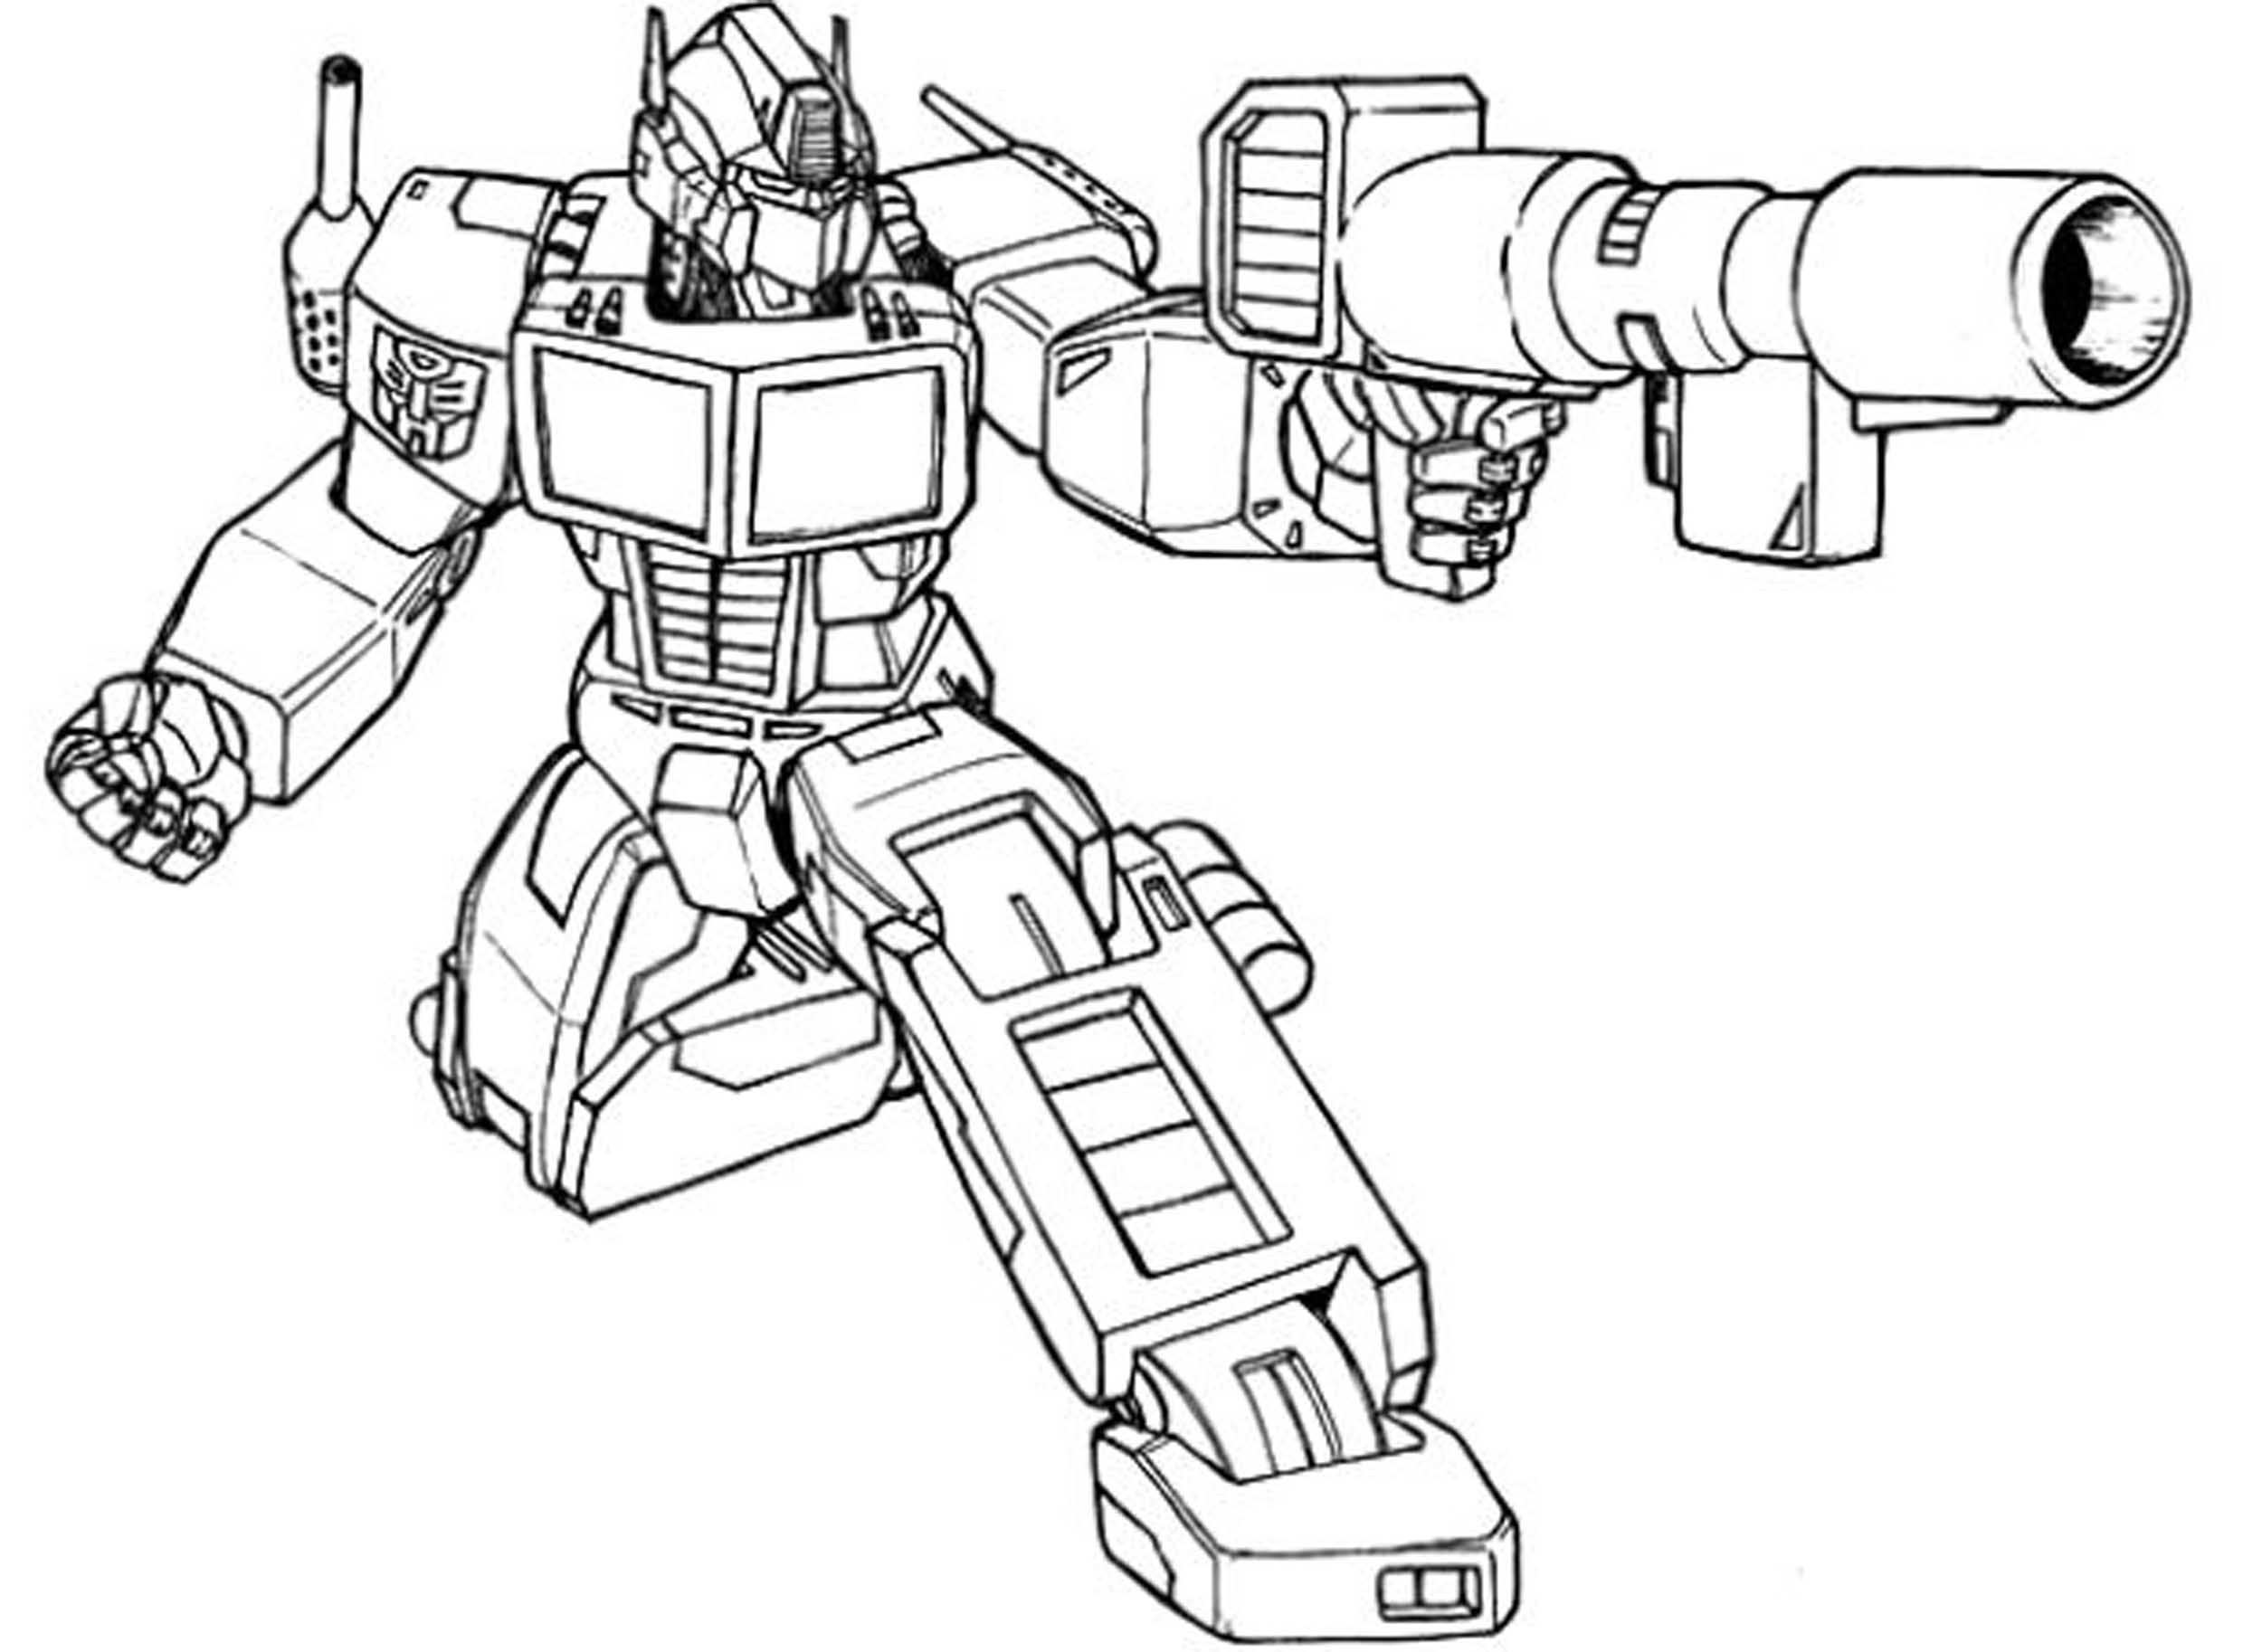 transformers bumblebee coloring pages bumblebee transformer coloring page educative printable coloring bumblebee transformers pages